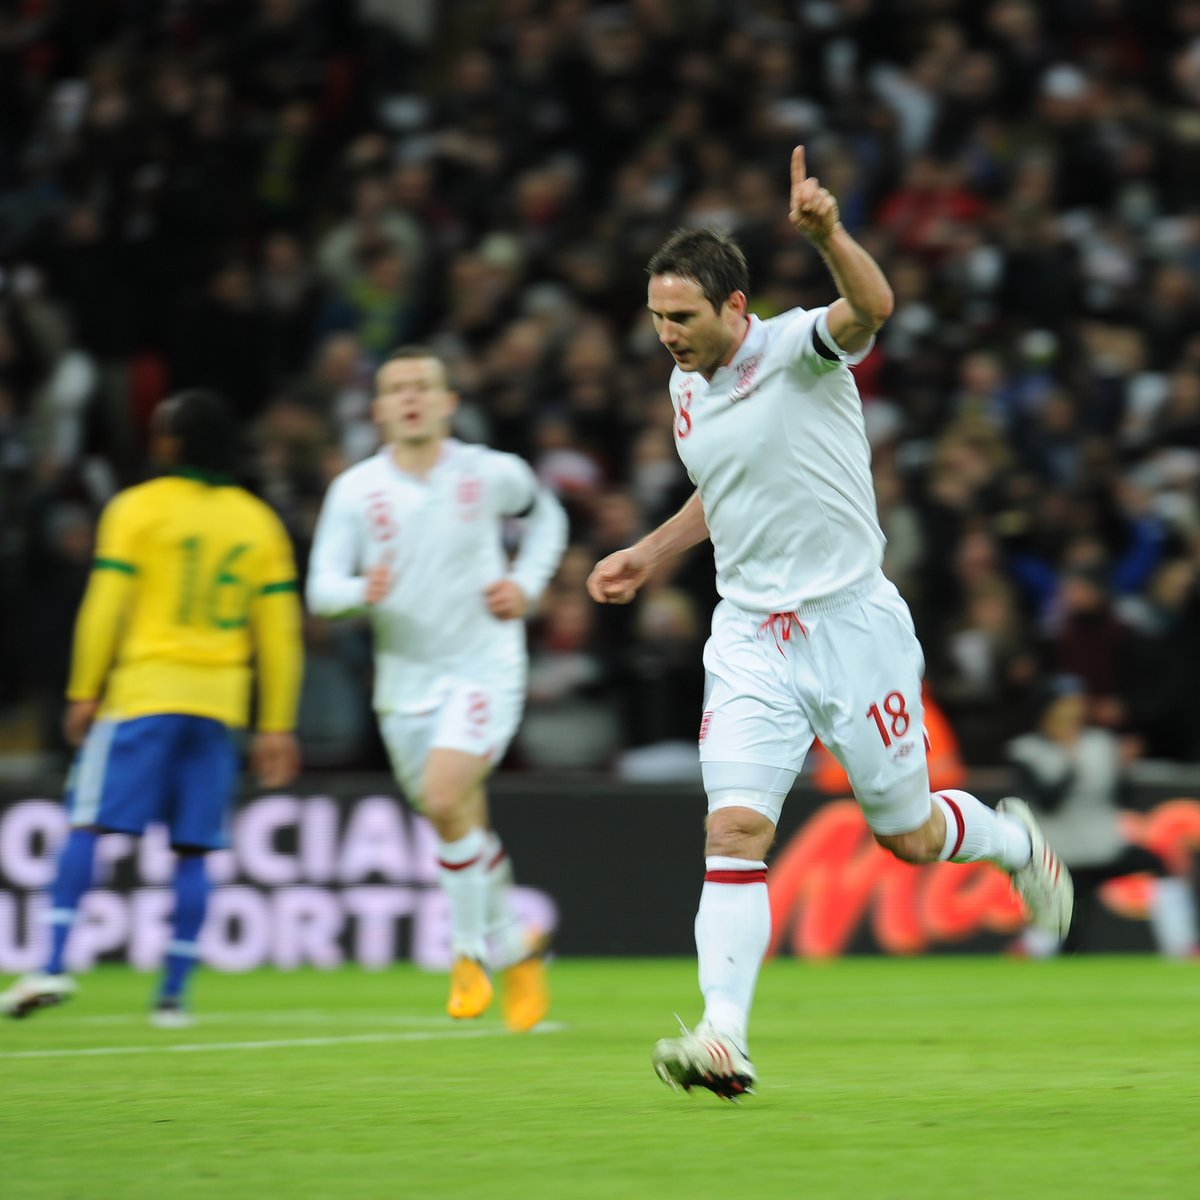 What a finish! 🤩 #OnThisDay seven years ago, Frank Lampards great strike helped the #ThreeLions to a 2-1 win against Brazil at @wembleystadium.